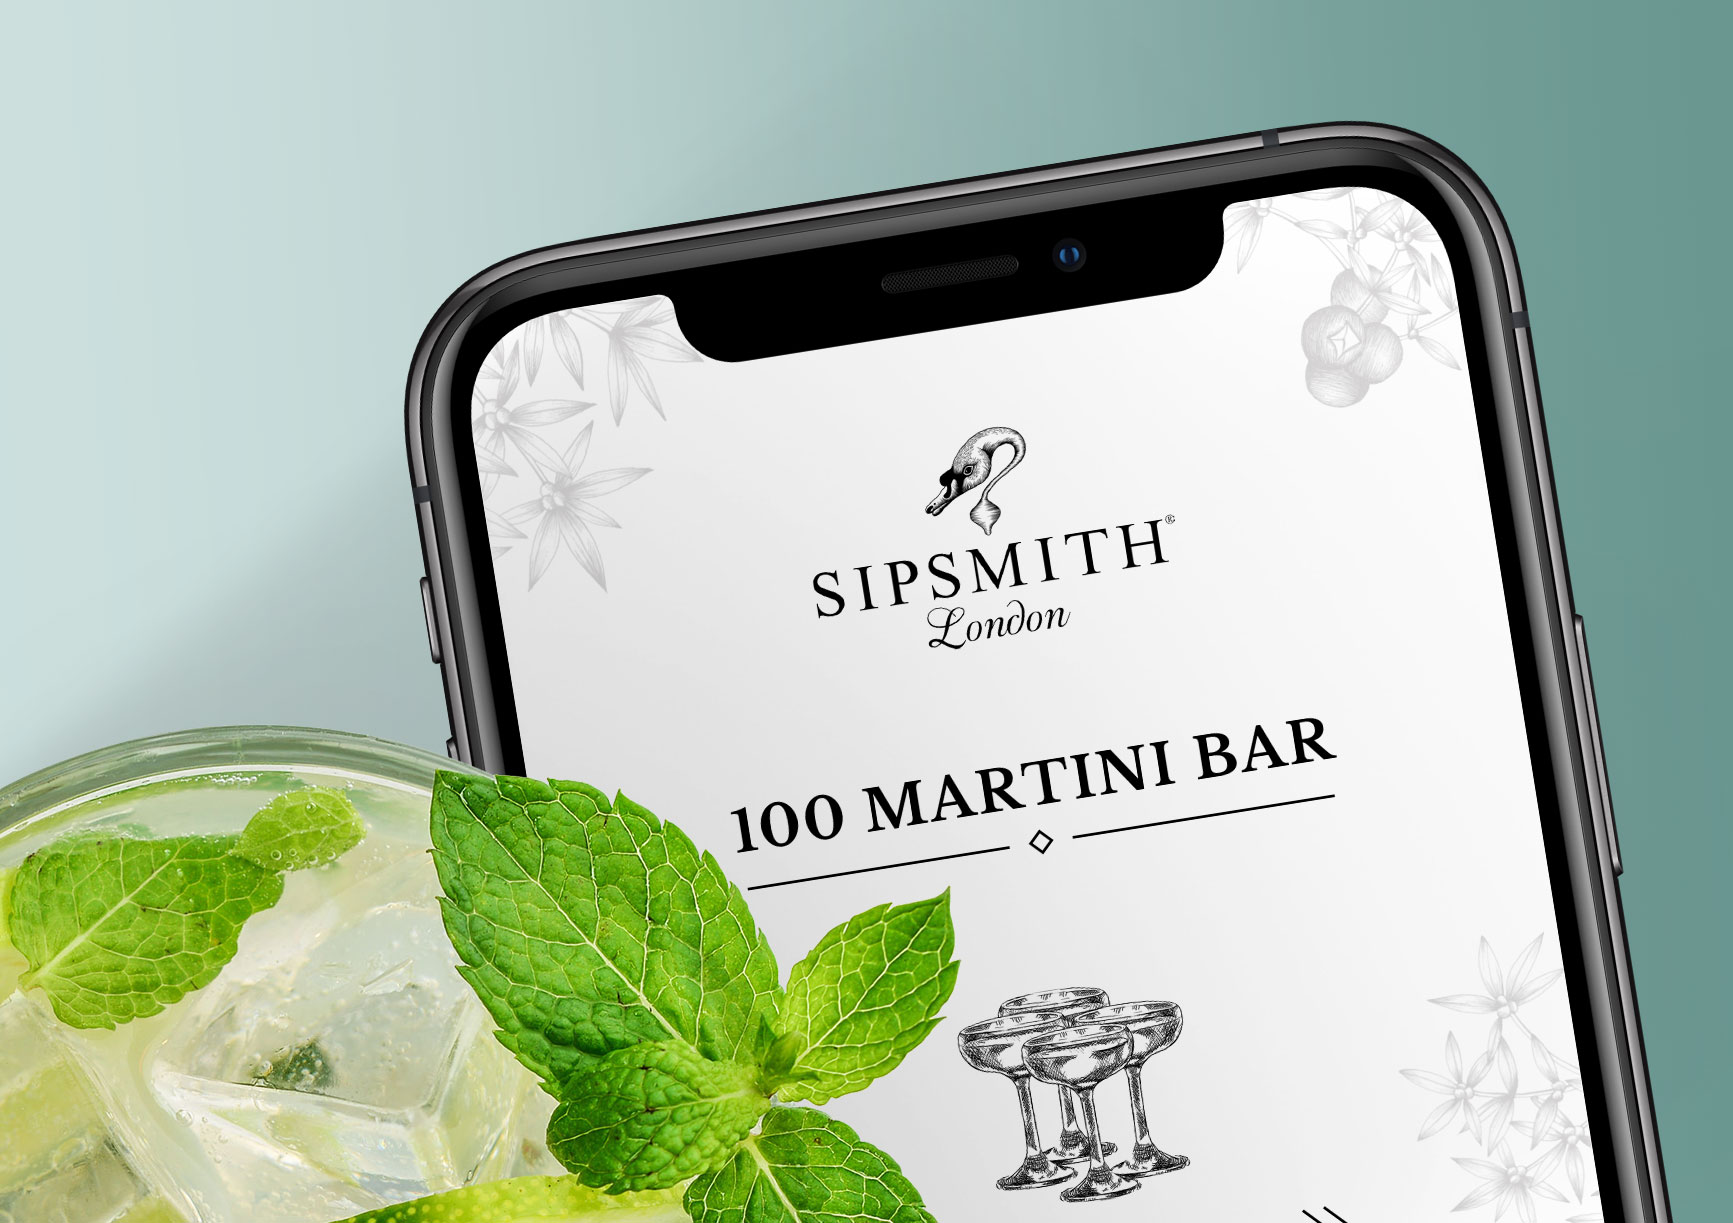 Sipsmith mobile app design